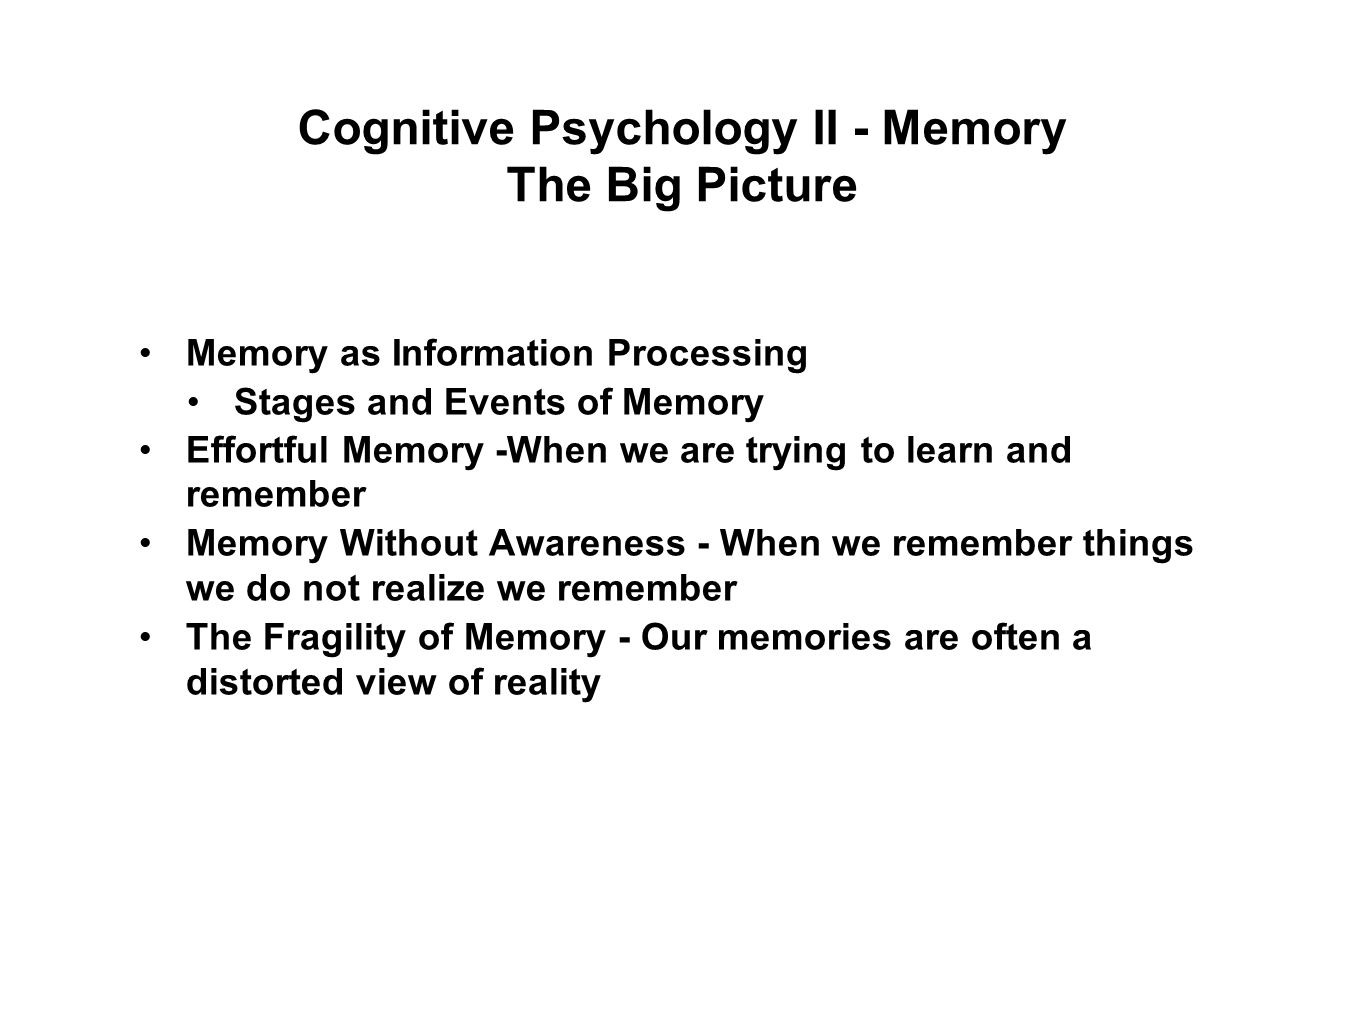 Cognitive Psychology II - Memory The Big Picture Memory as Information Processing Stages and Events of Memory Effortful Memory -When we are trying to